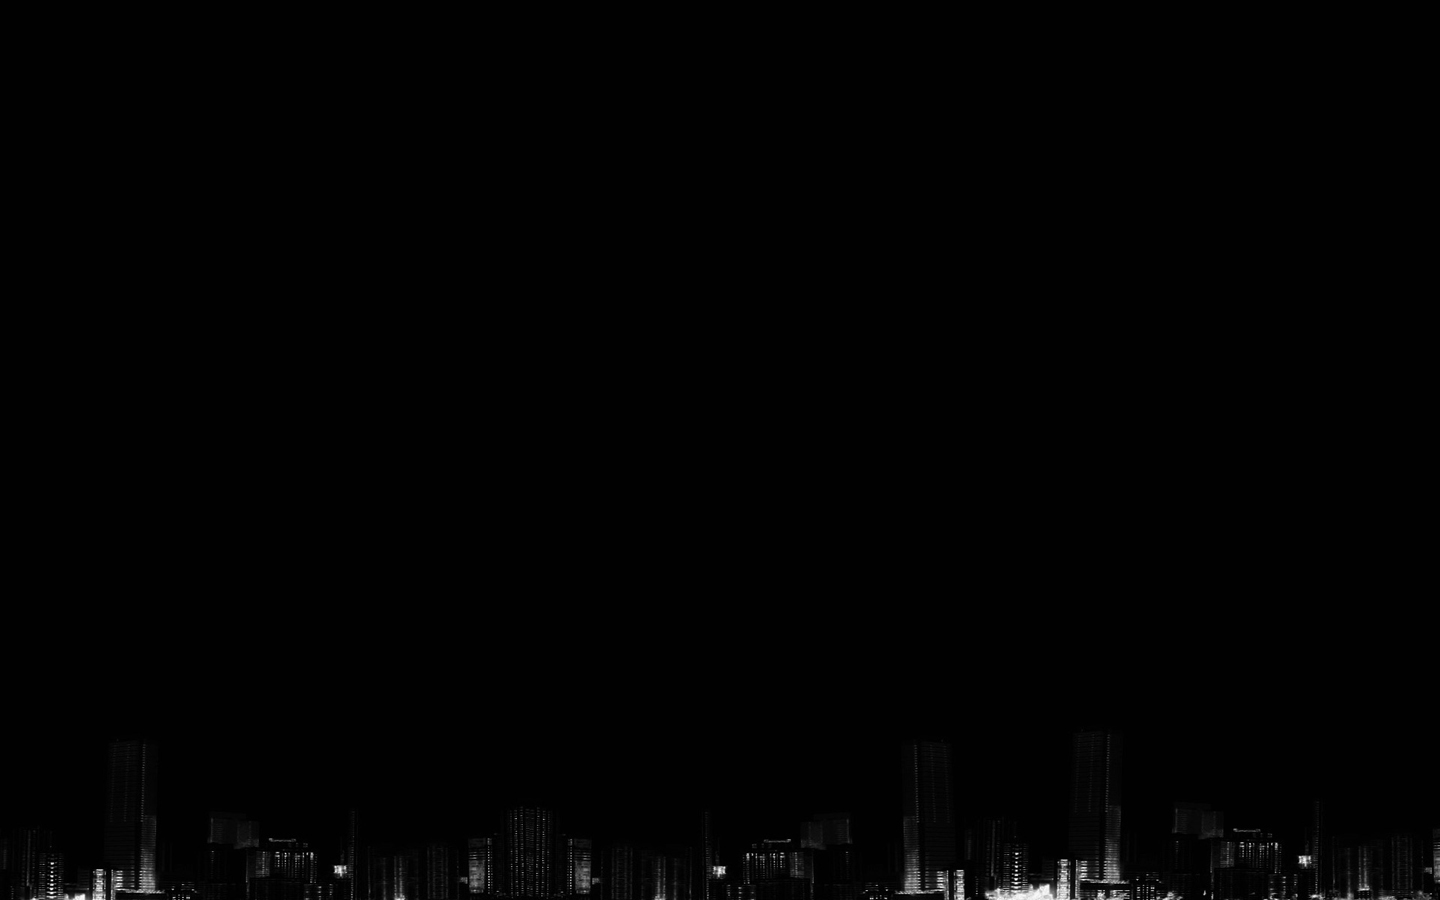 Black City Wallpaper - Unique Wallpaper